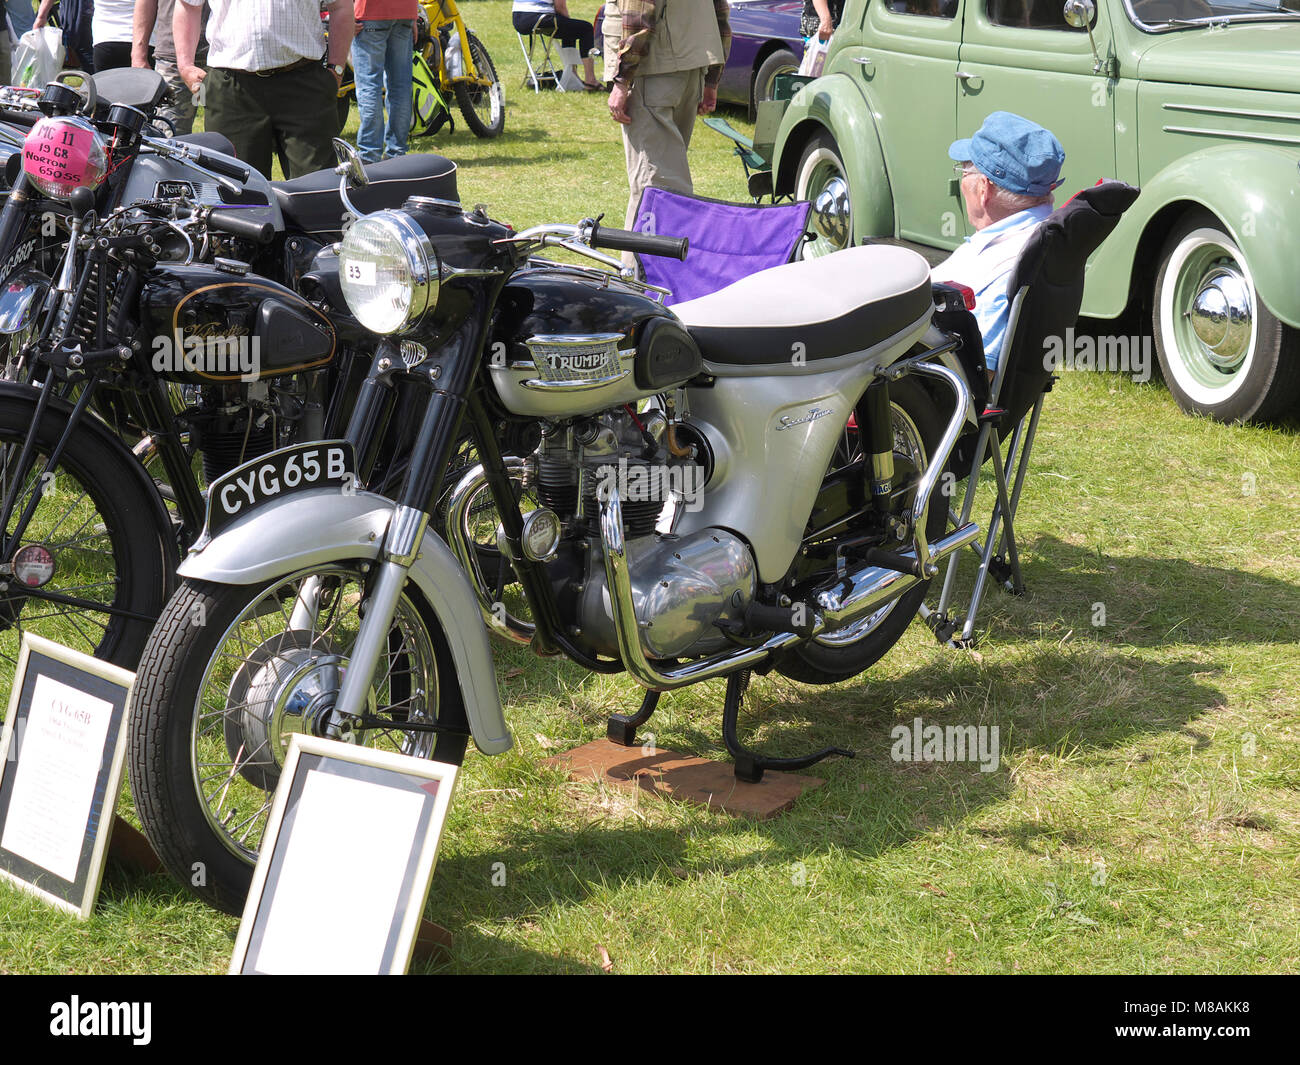 Classic Triumph motorbike at Stradsett rally, Norfolk - Stock Image